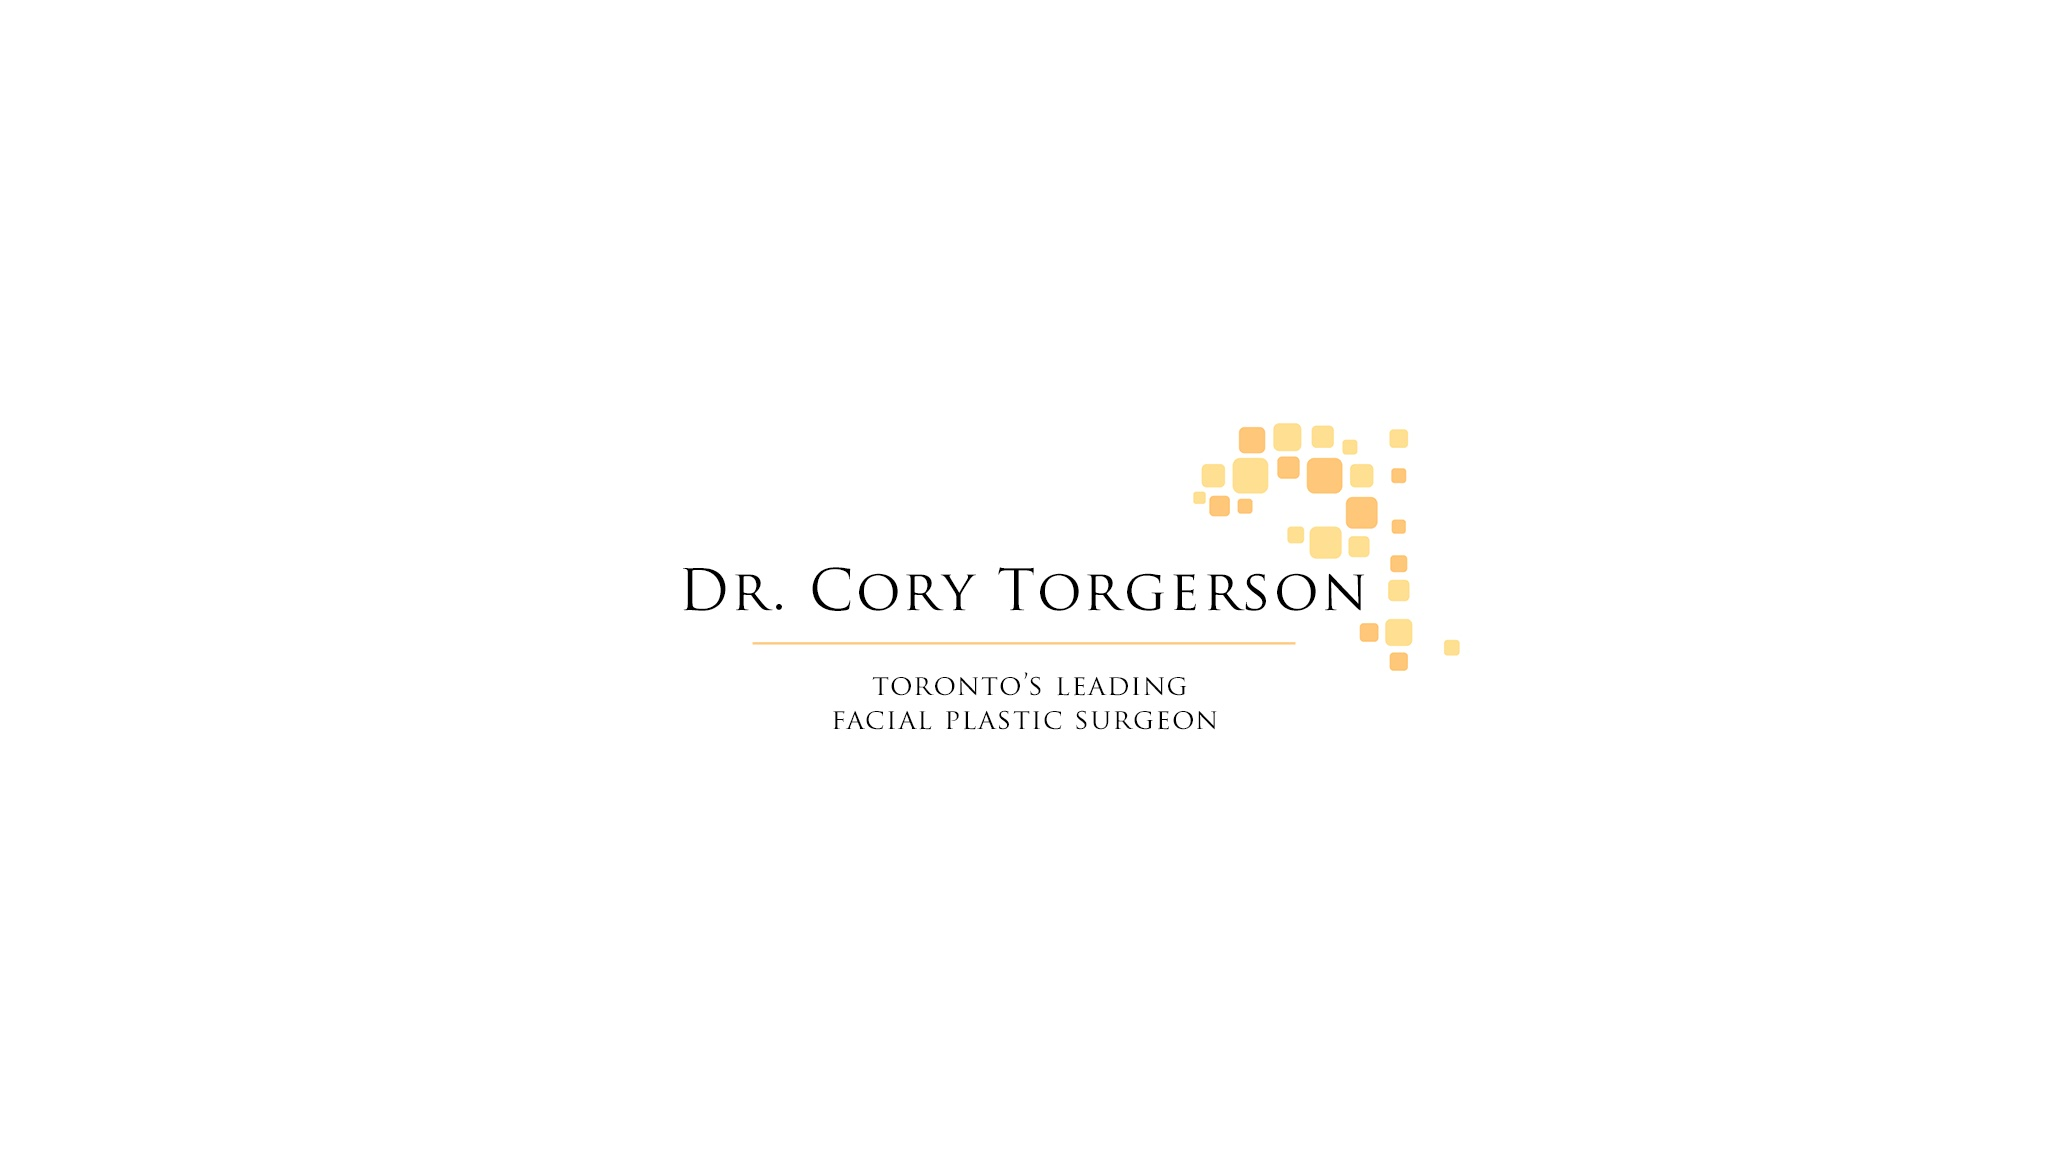 Dr. Cory Torgerson Facial Cosmetic Surgery & Laser Centre